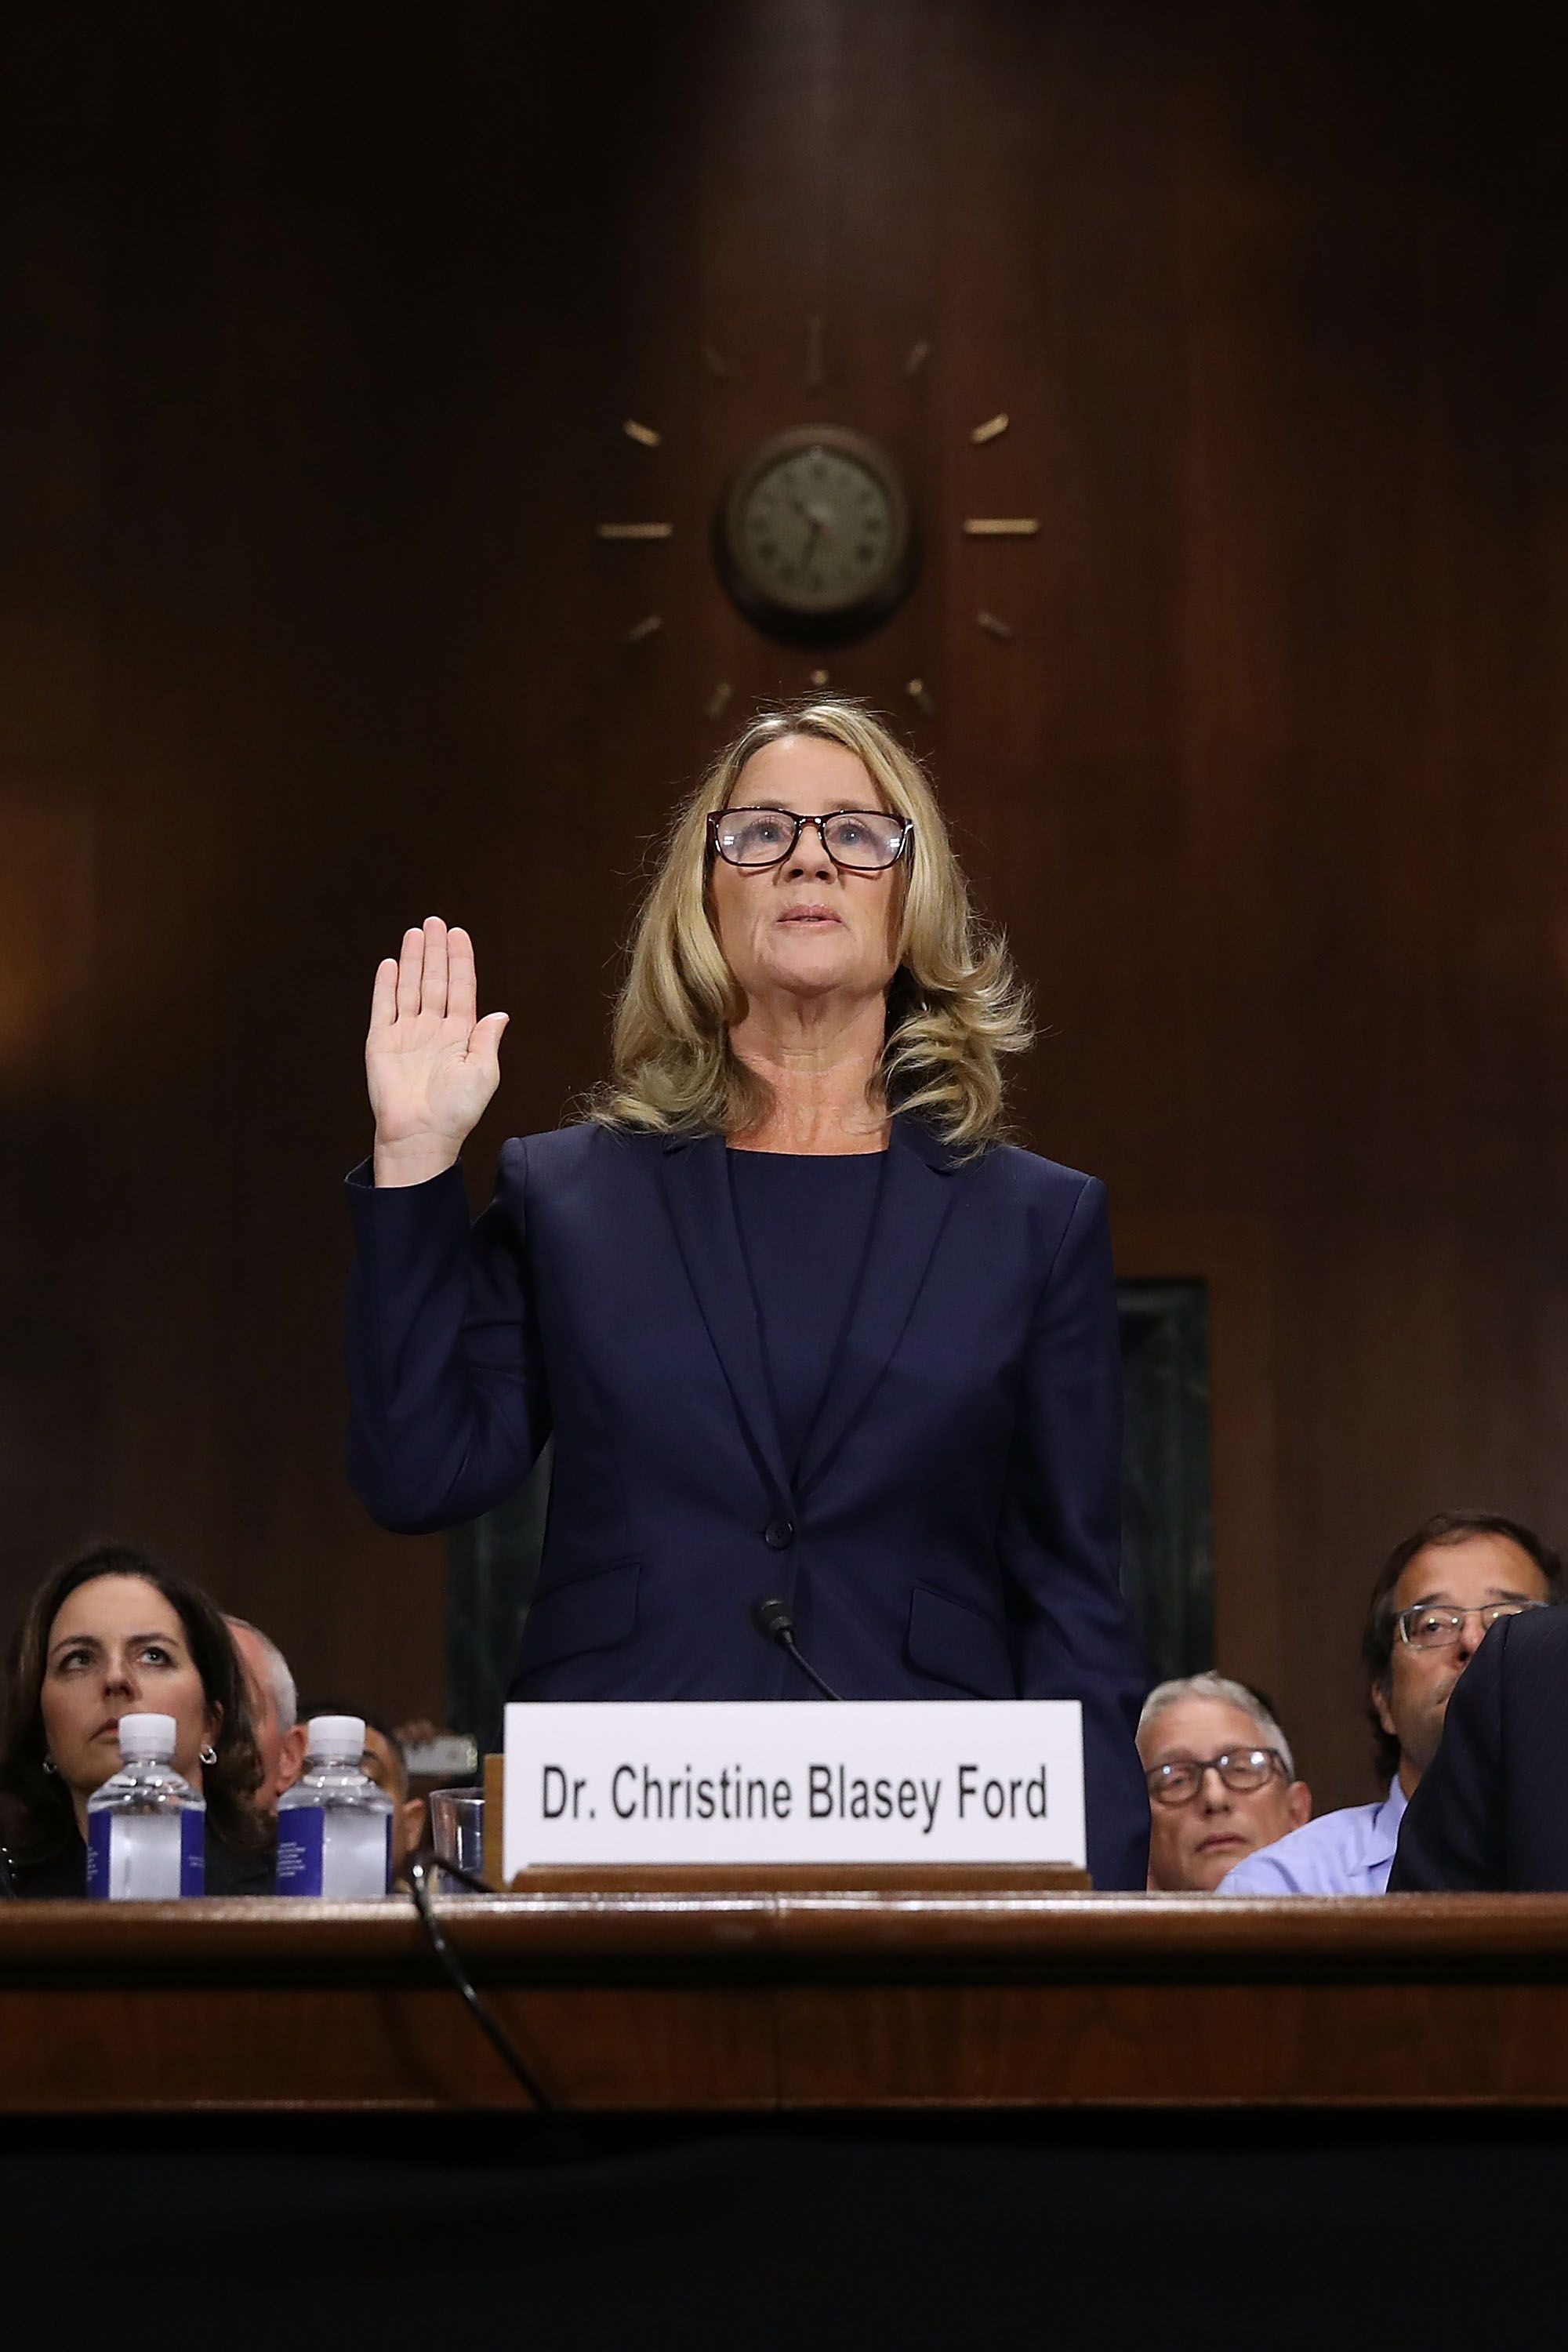 People Share Their Own Stories of Sexual Assault in Solidarity with Dr. Christine Blasey Ford